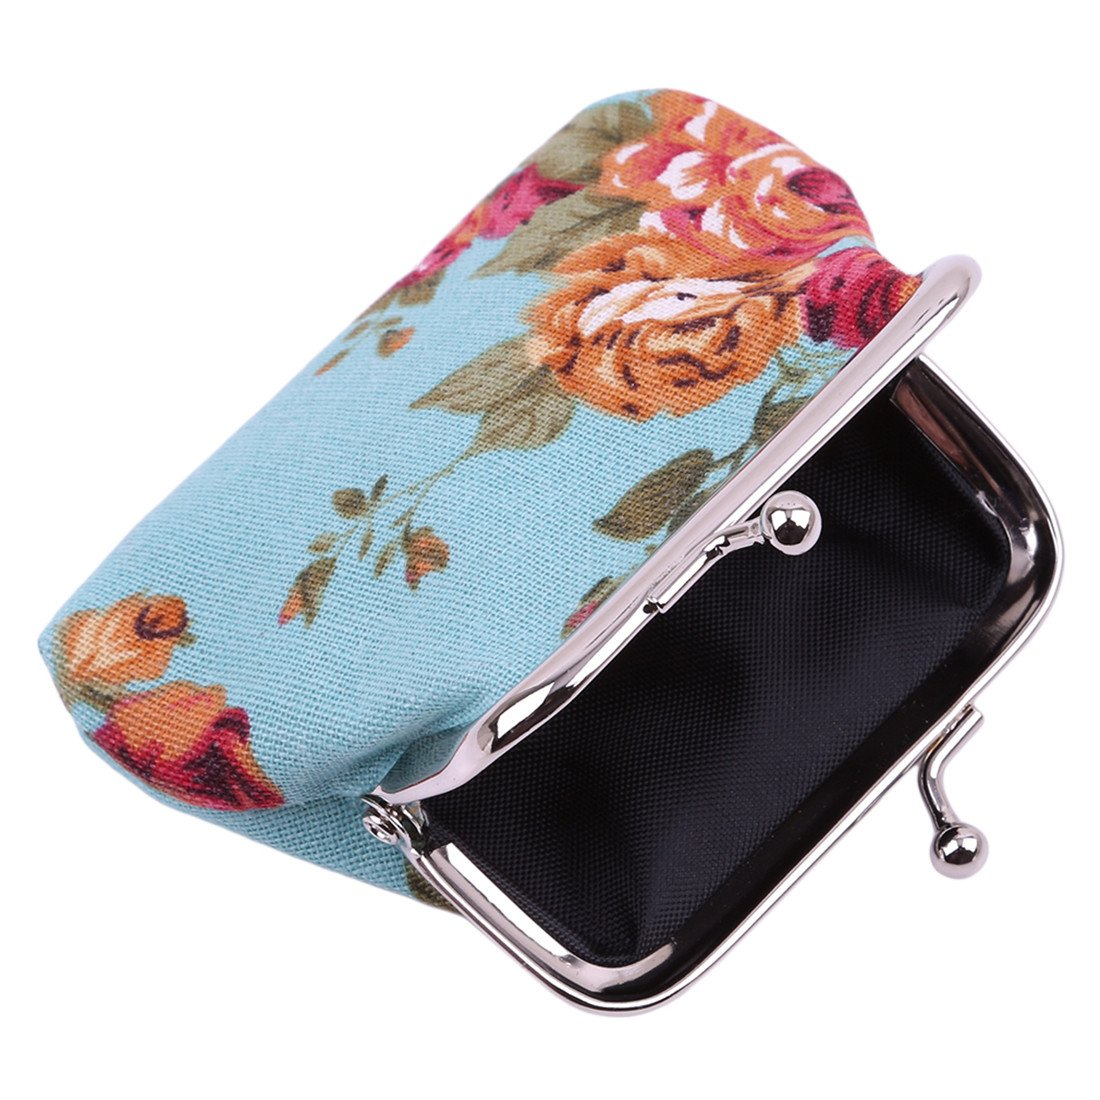 VWH Women Retro Small Wallet Flower Clutch Bag Good Flowers Gift Bags (blue) by VWH (Image #3)